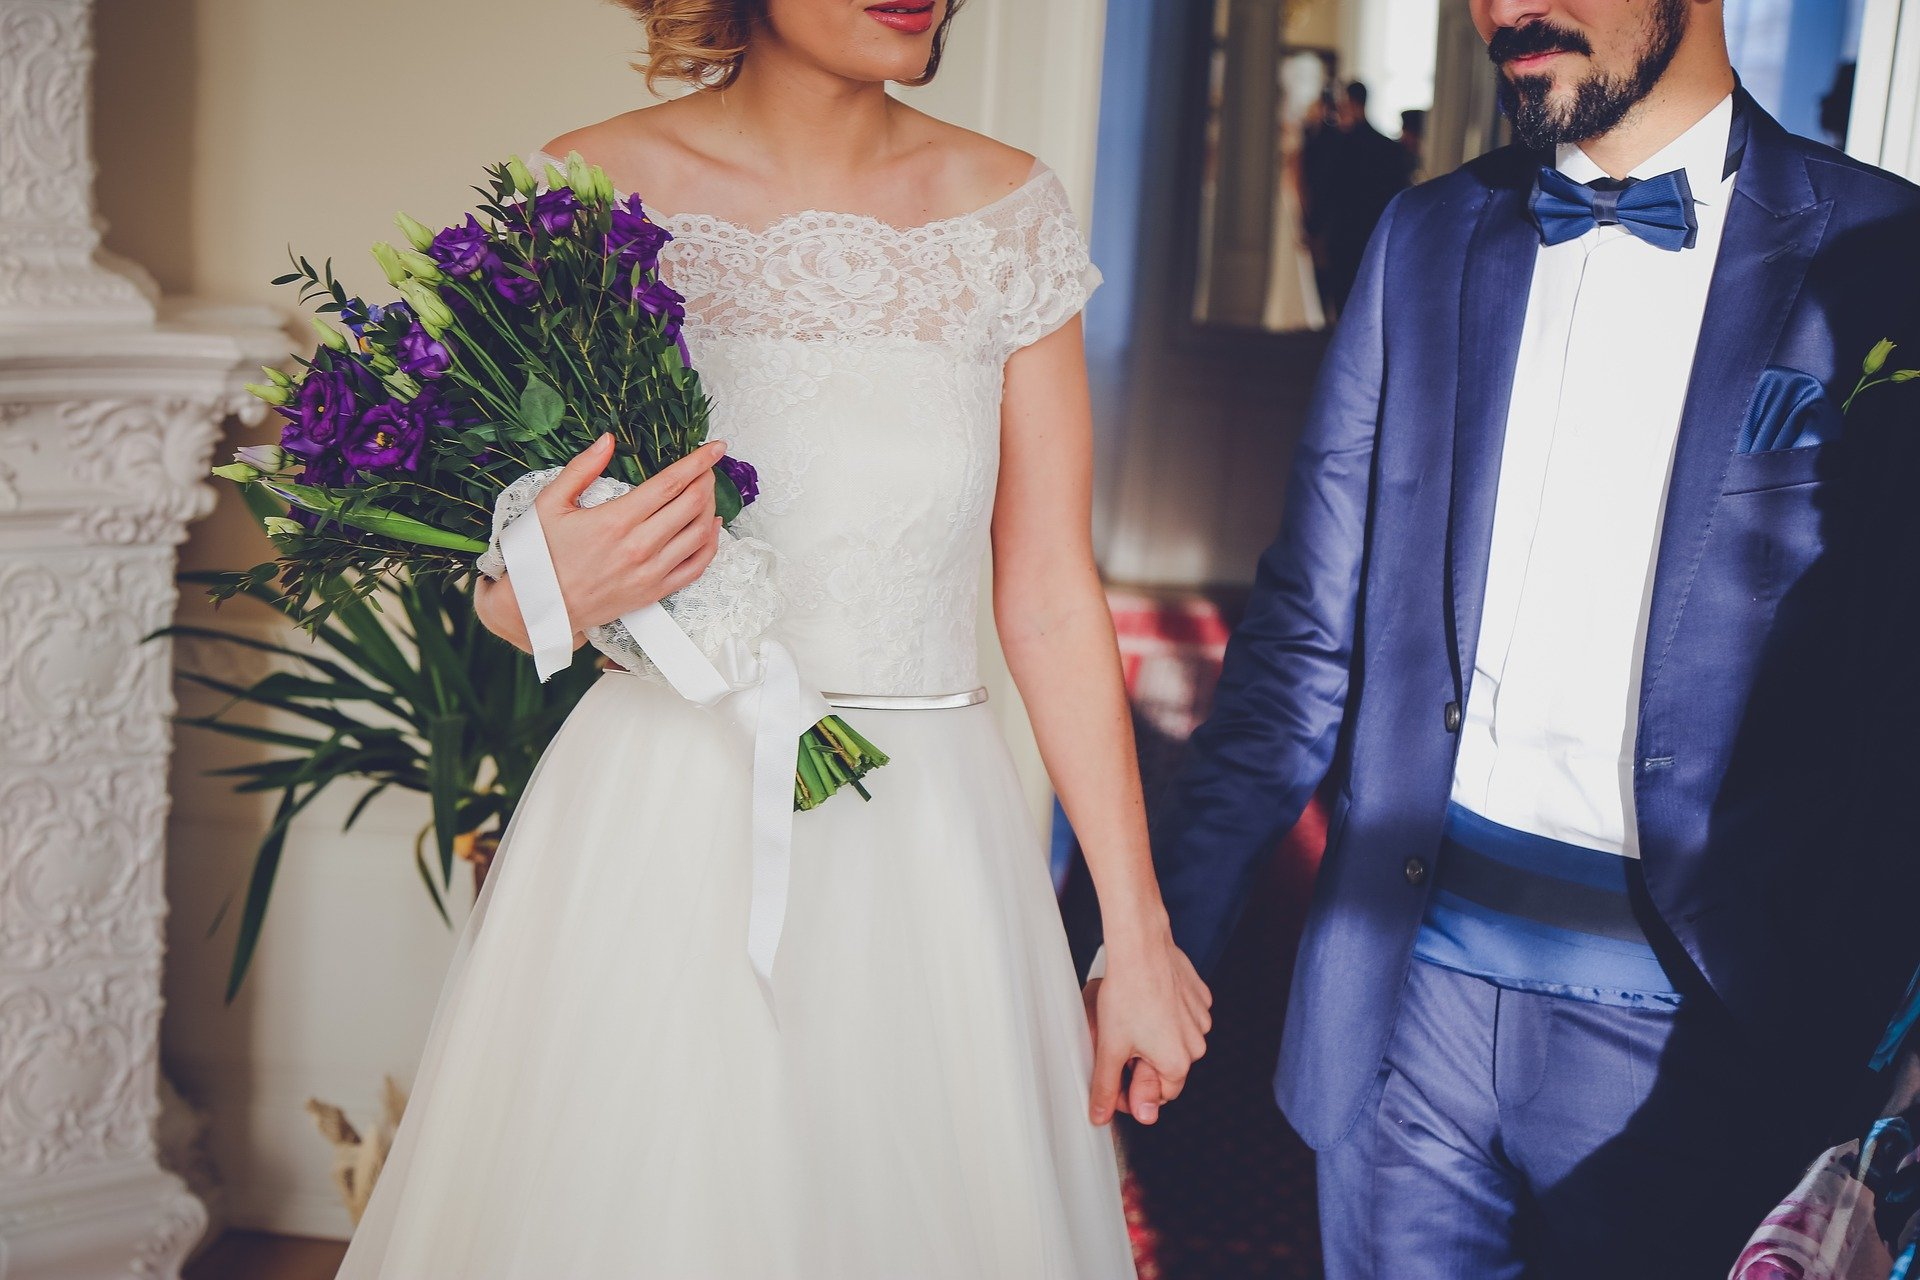 A couple in formal wear with the wife holding a bouquet of flowers as they hold hands   Photo: Pixabay/StockSnap